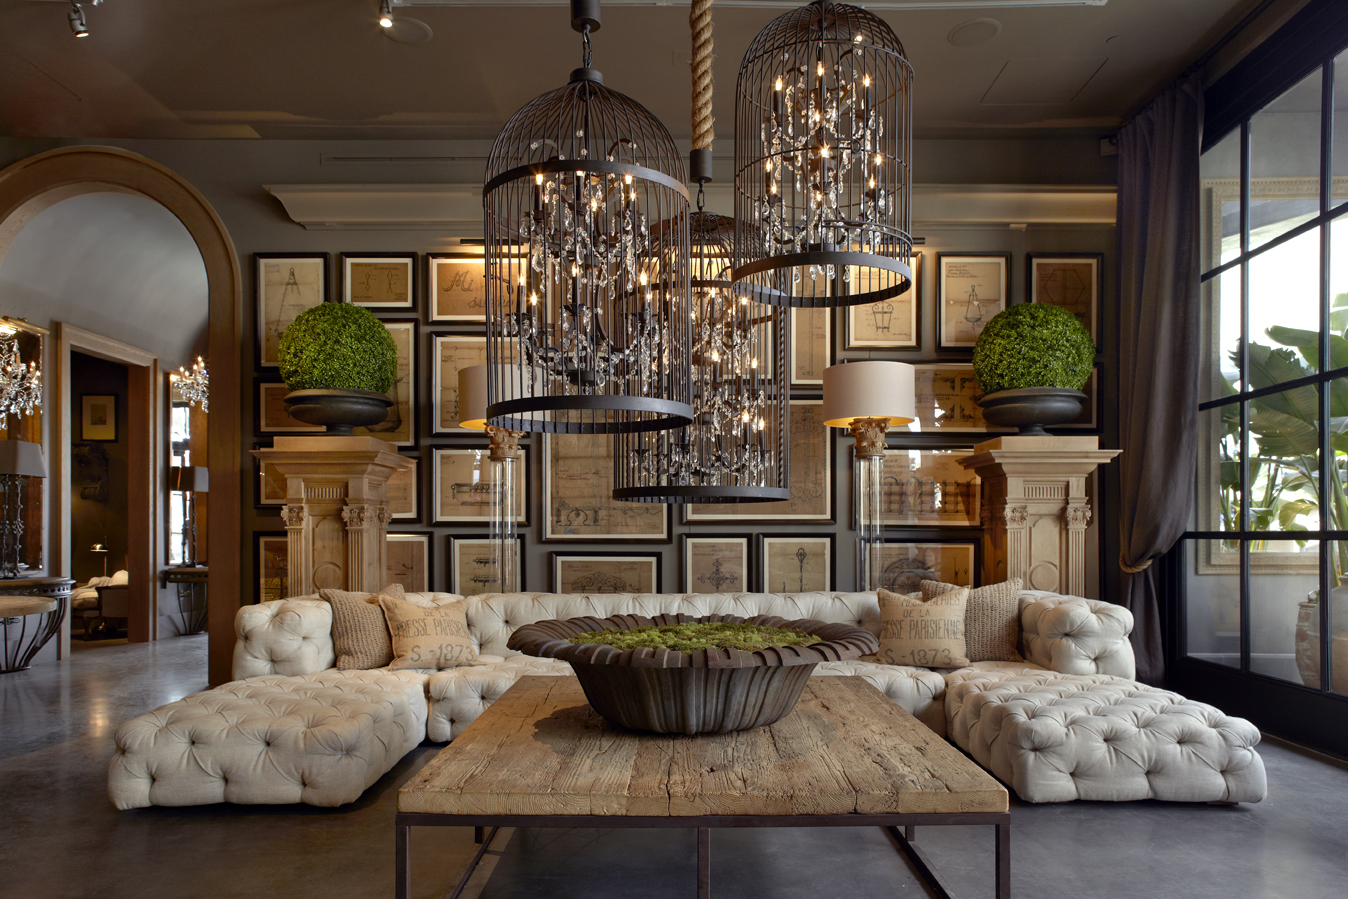 FileRestoration Hardware 11 12 11 0527jpg Wikimedia